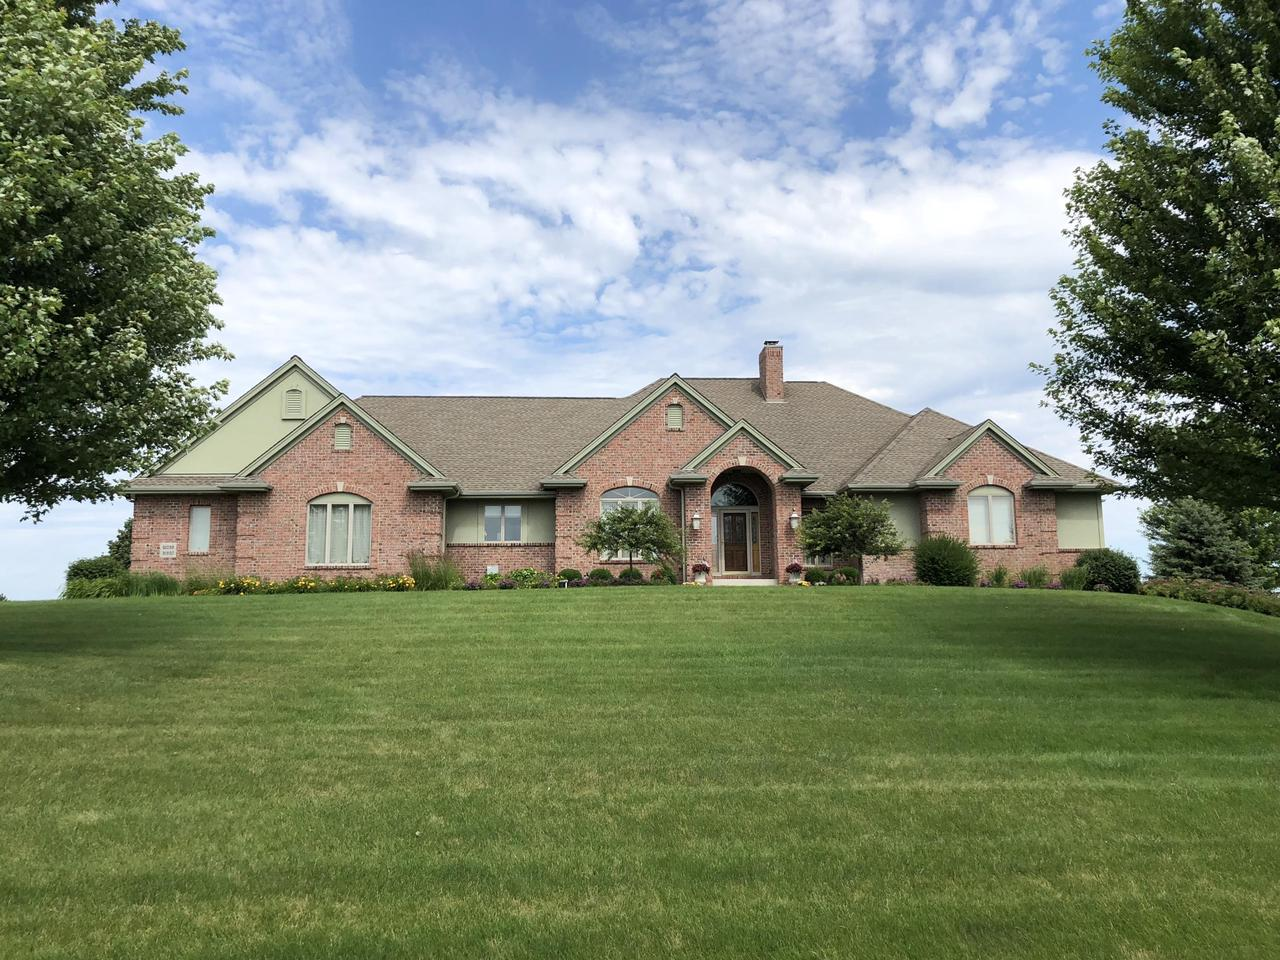 Waukesha Wi Homes For Sale Waukesha Wi Real Estate Place Perfect